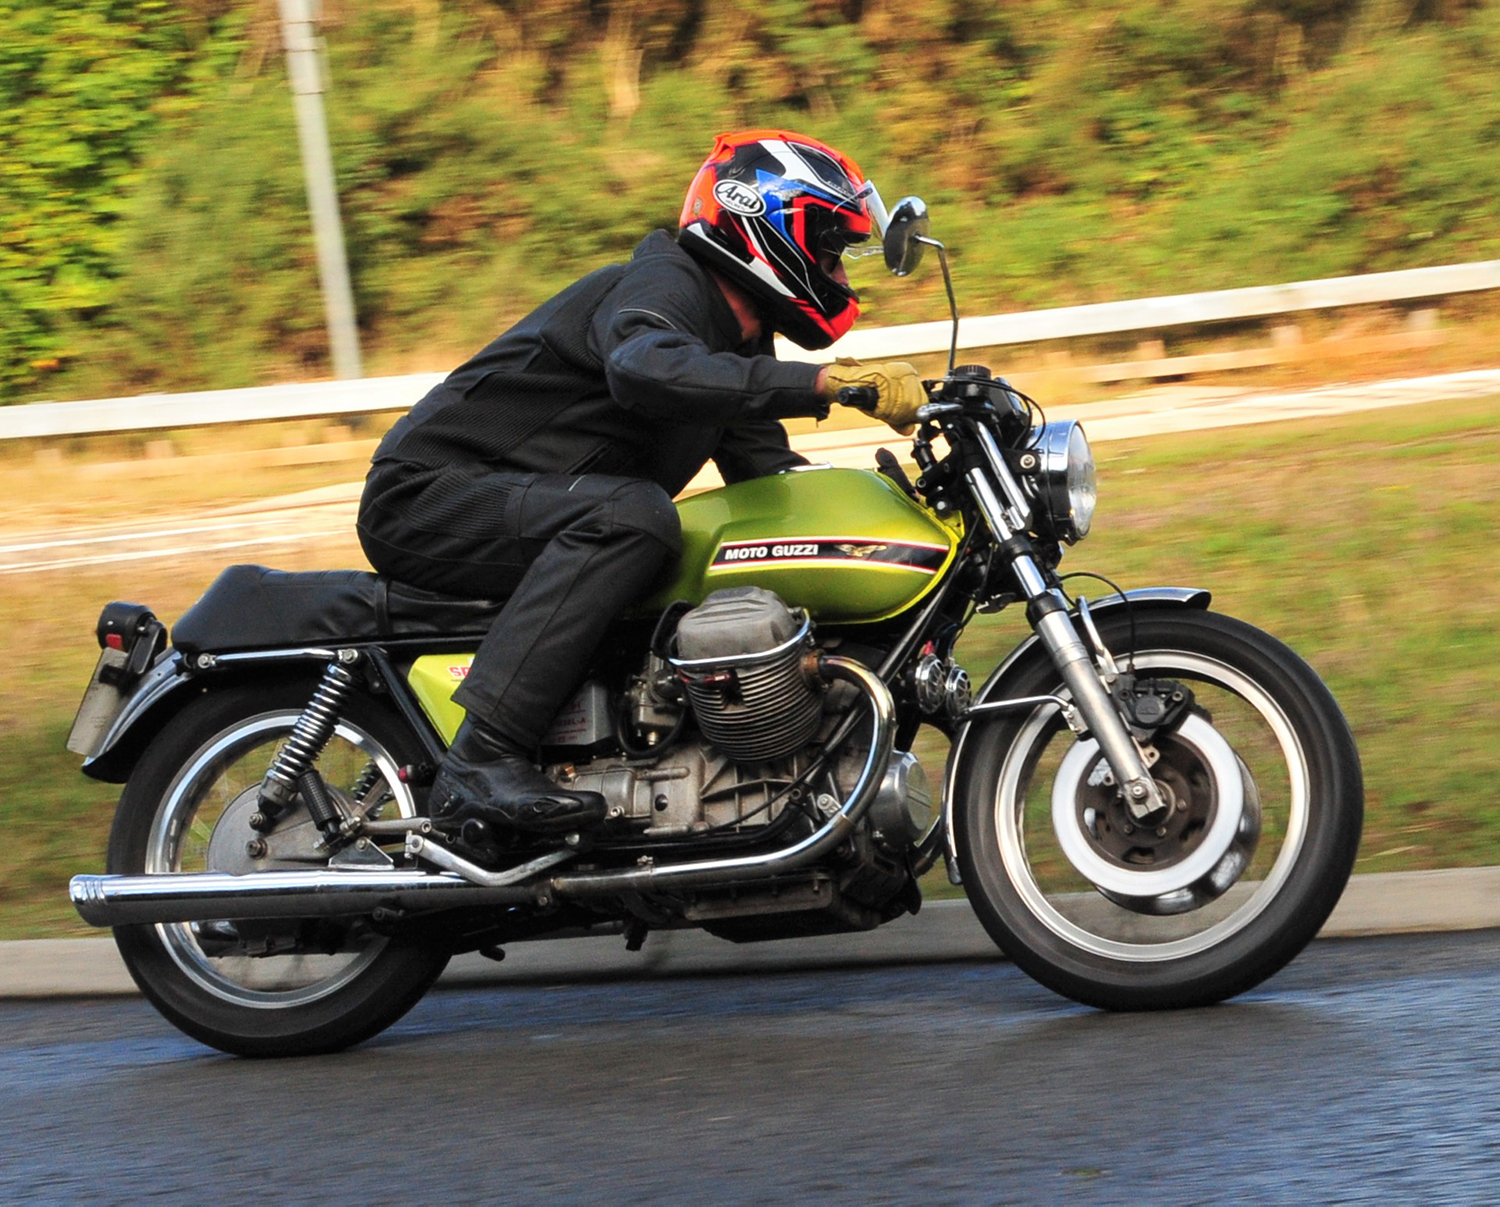 Vintage bikes are increasing in value, but that's not why you should buy one